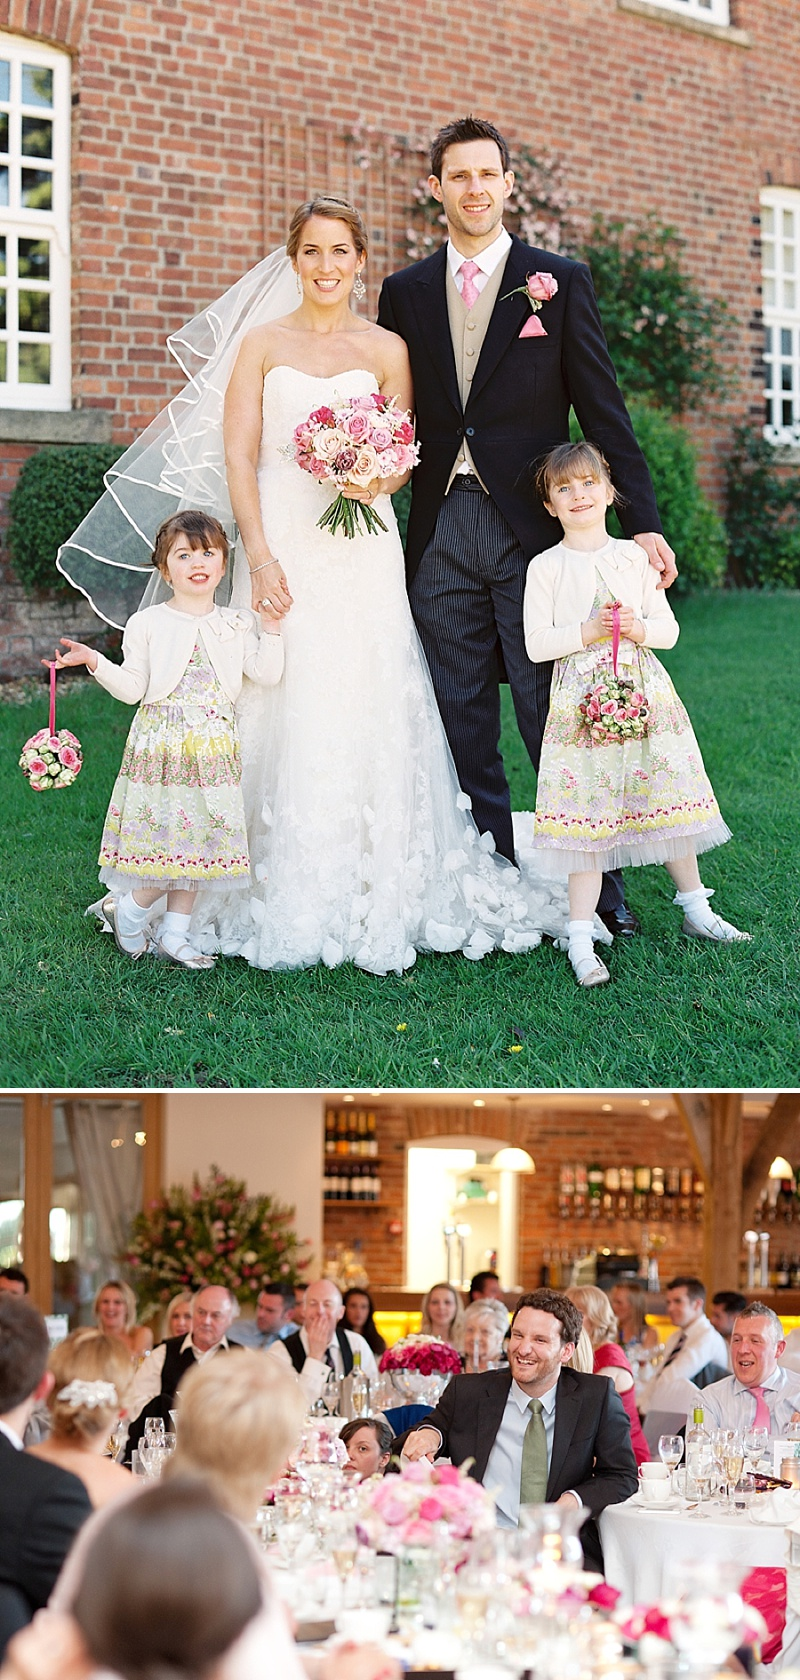 A Spring Themed Wedding at Swancar Farm, Nottinghamshire, Bride in Fairy by Enzoani with No 1 by Jenny Packham shoes, images by Depict Photography_0018